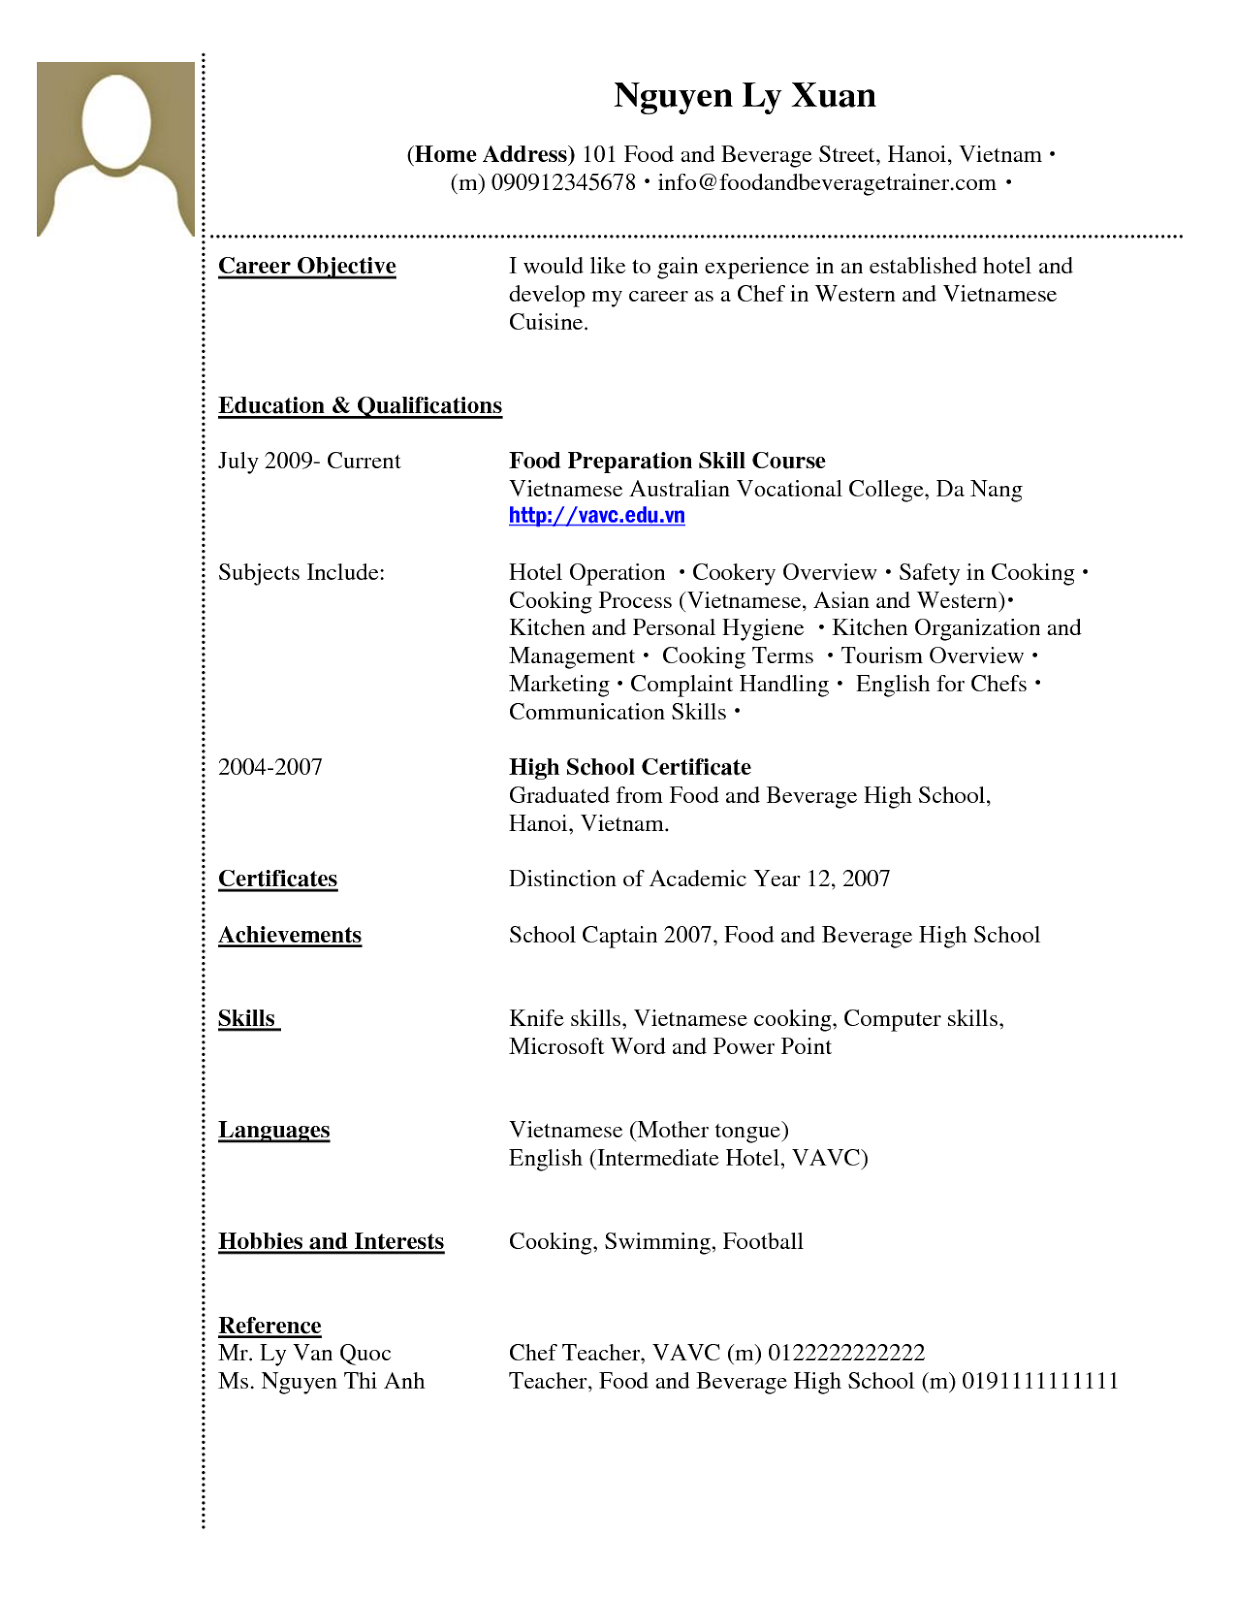 resume sample high school student download resume templates for highschool students coverletter download resume templates for